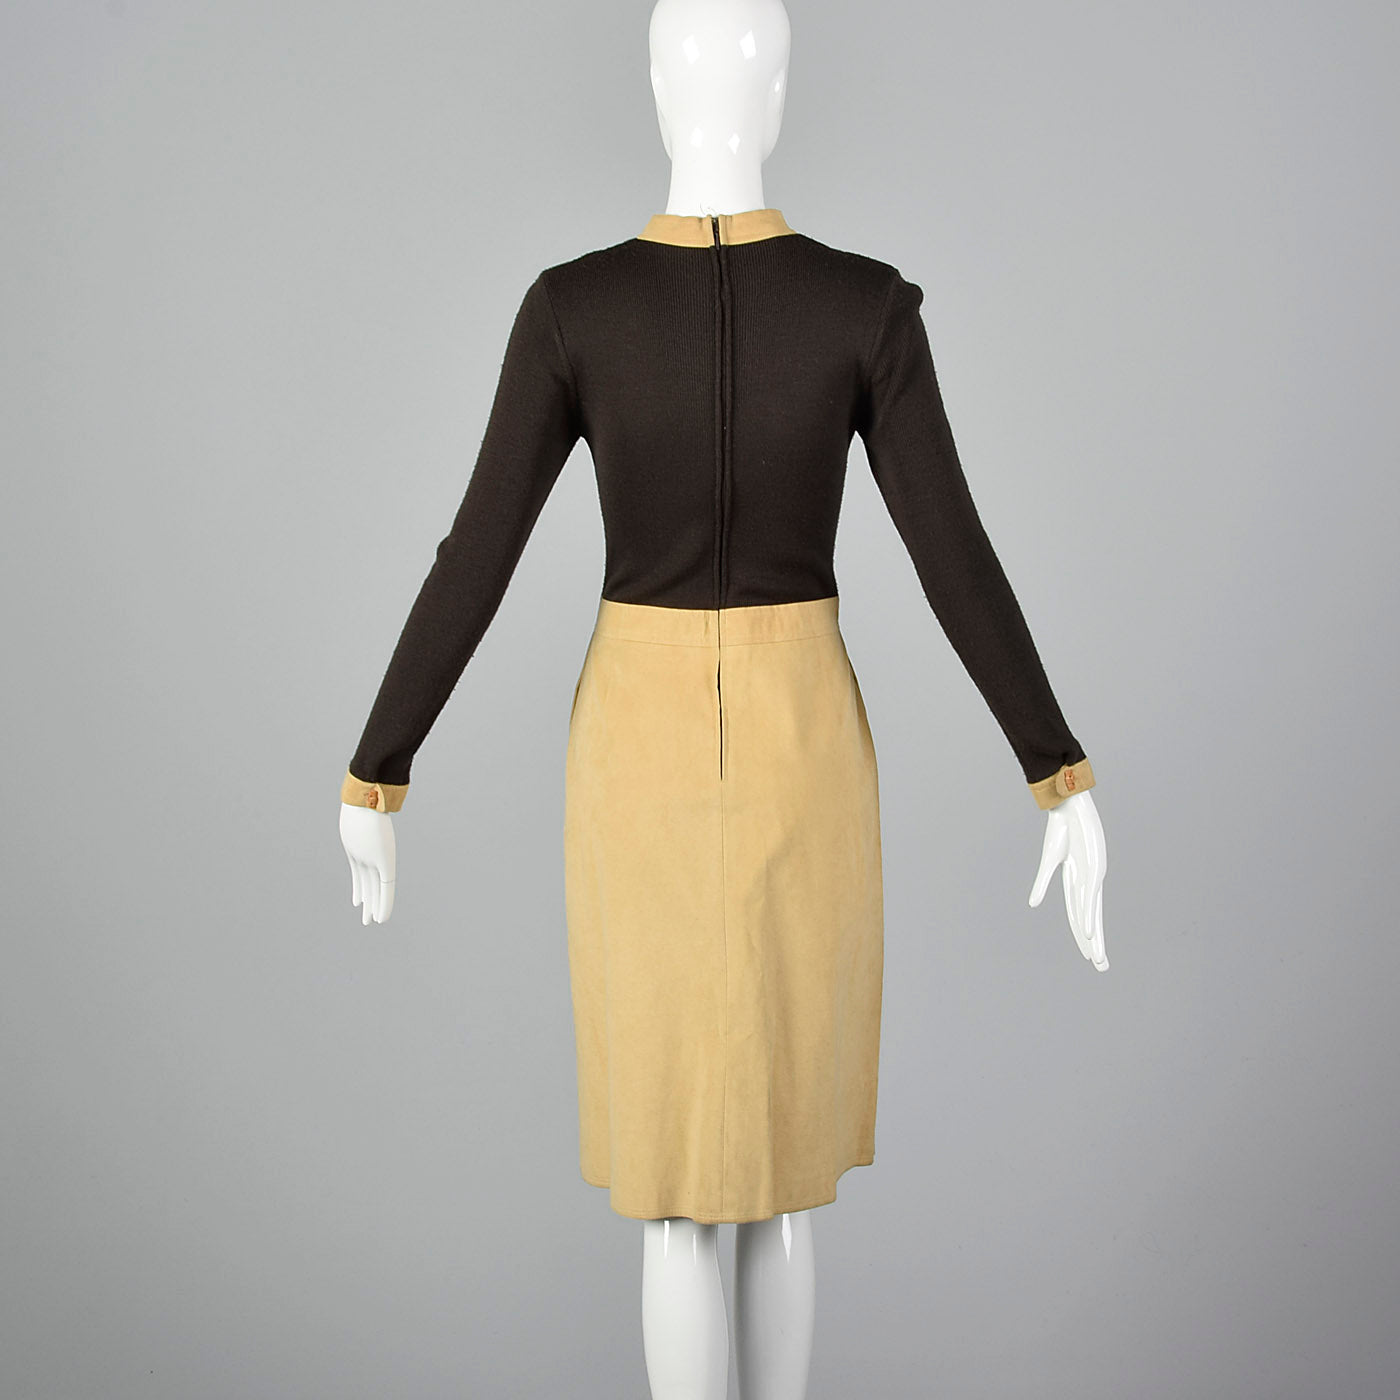 1970s Brown Knit and Leather Dress